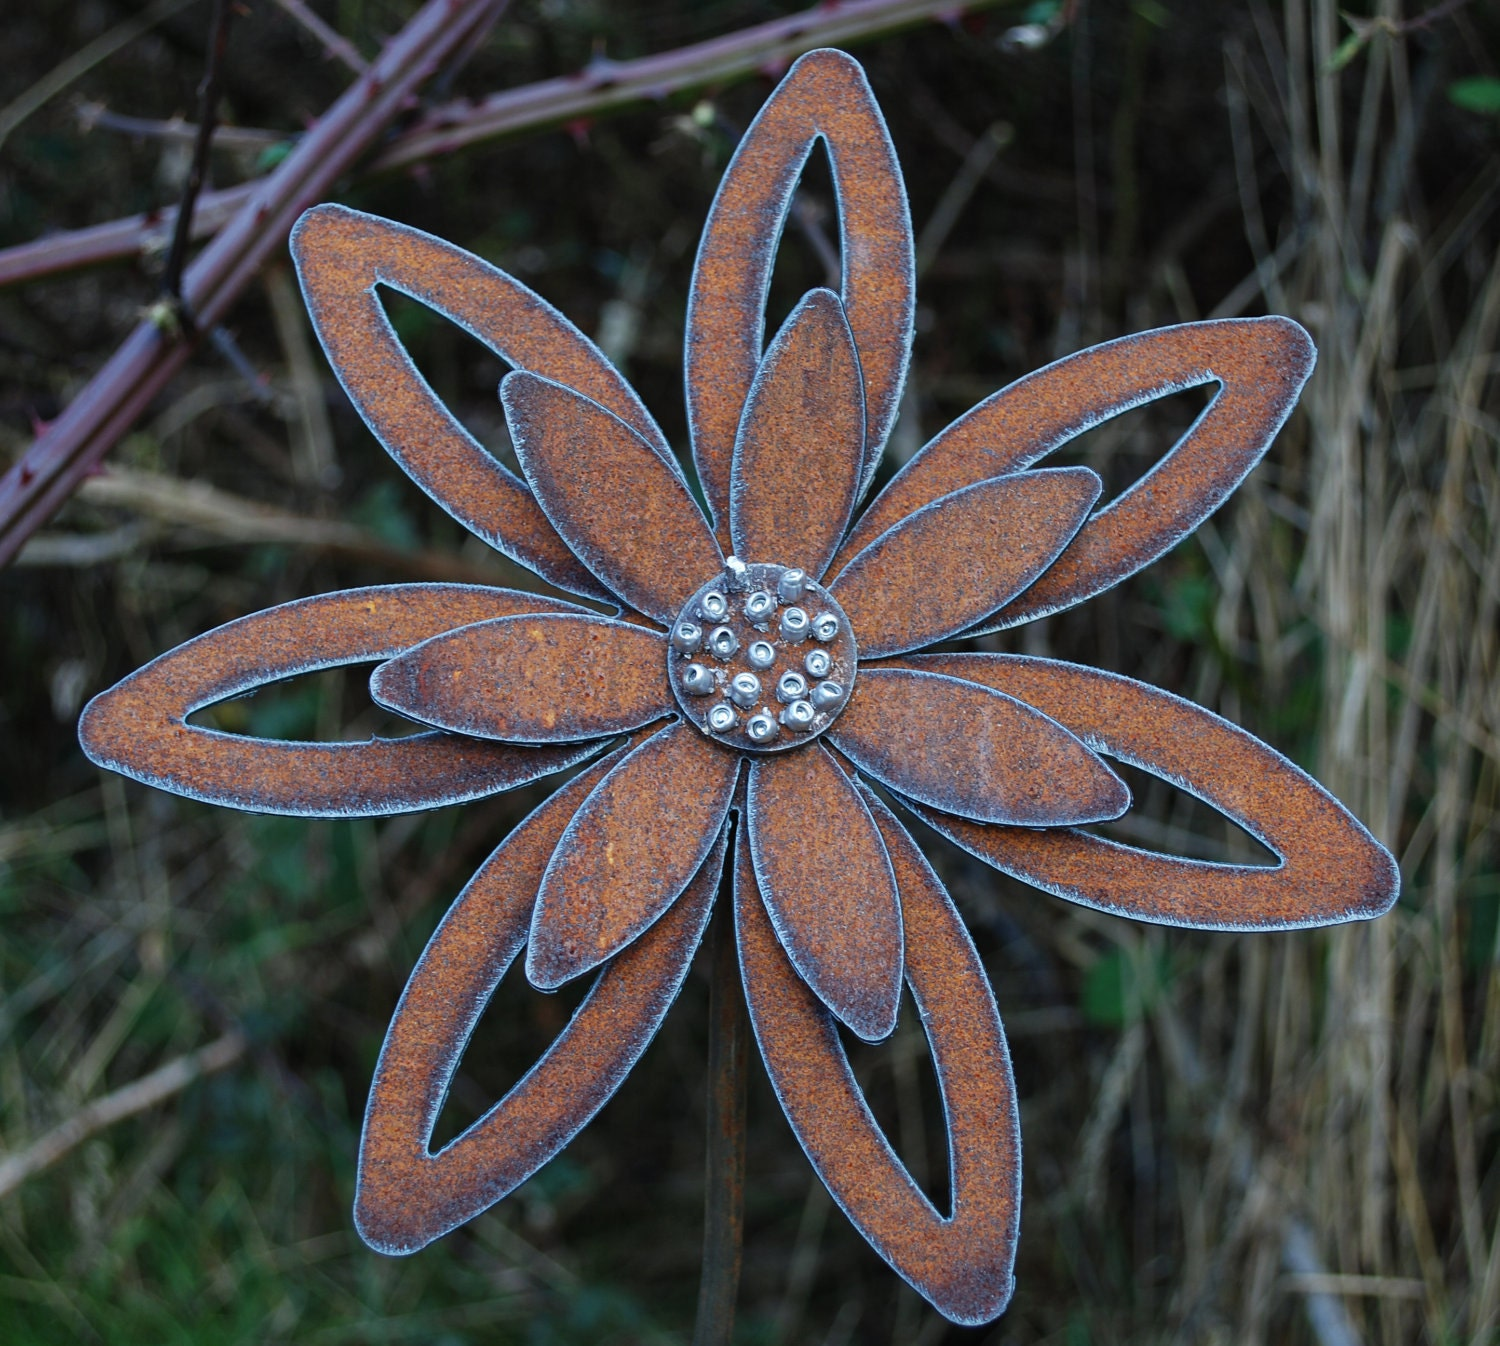 Rusted flower garden art garden stake decor for Flower garden decorations